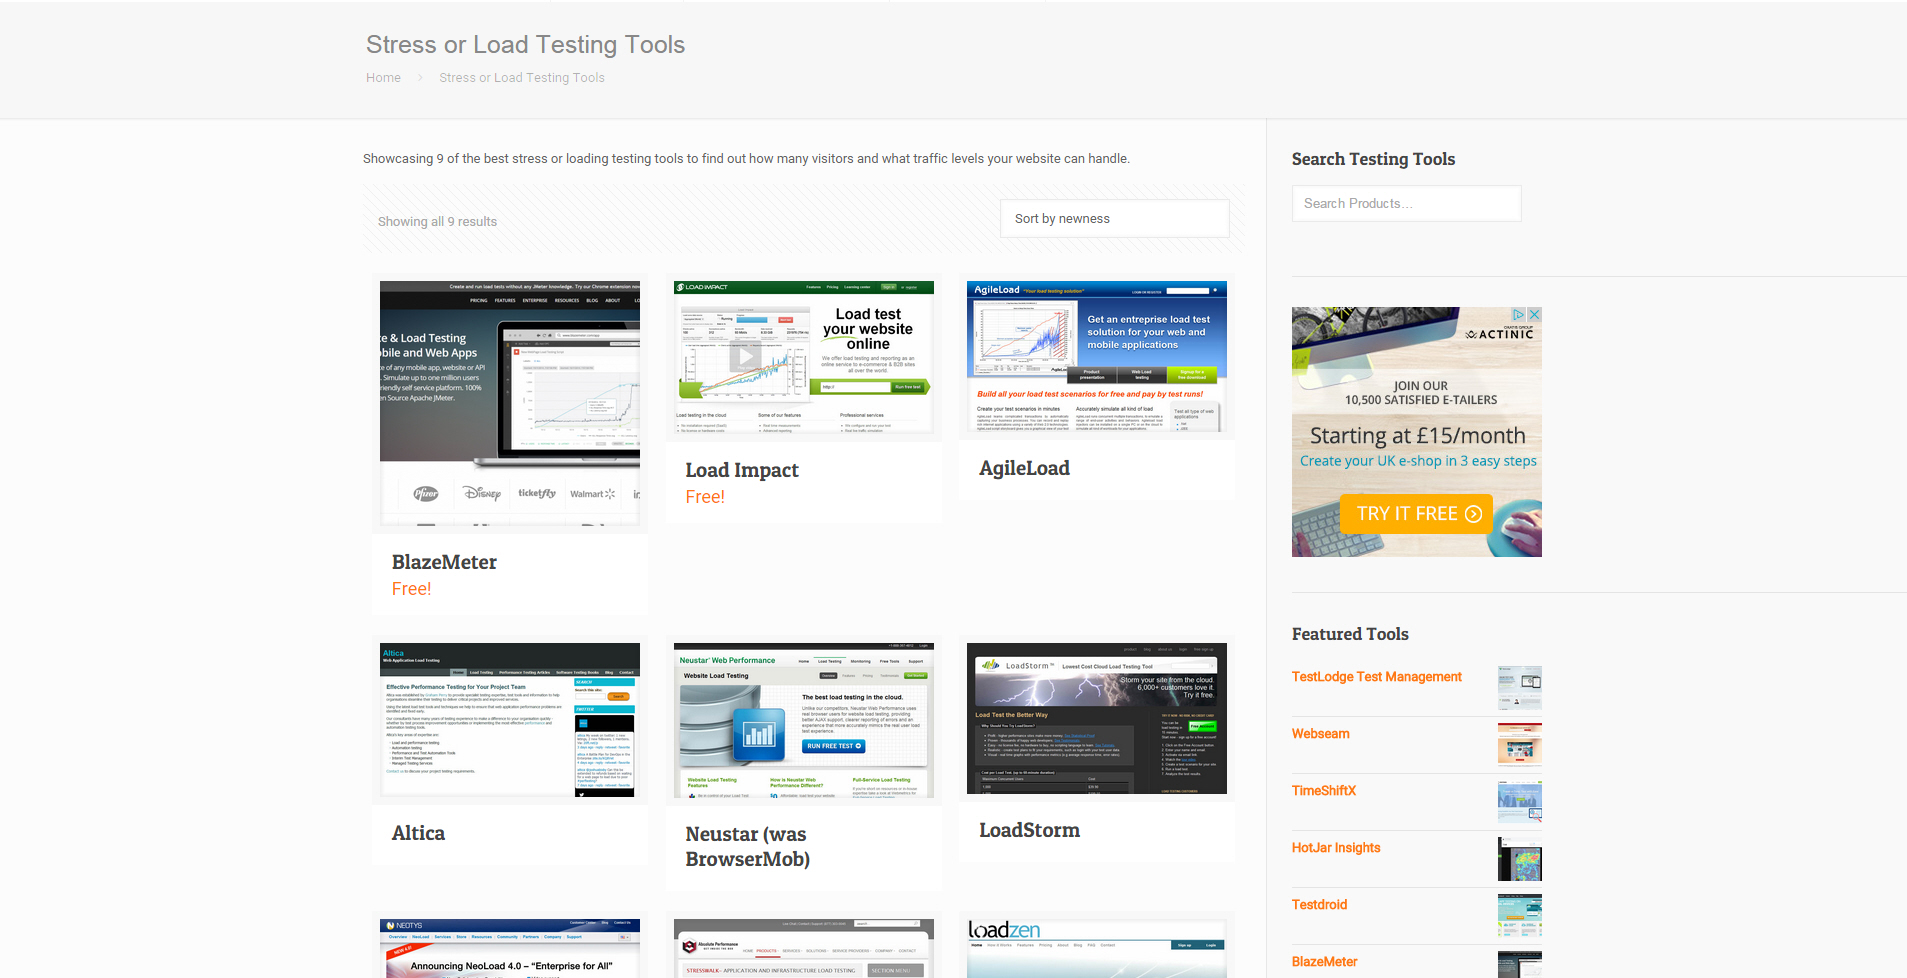 Load Testing - information and tools for load testing